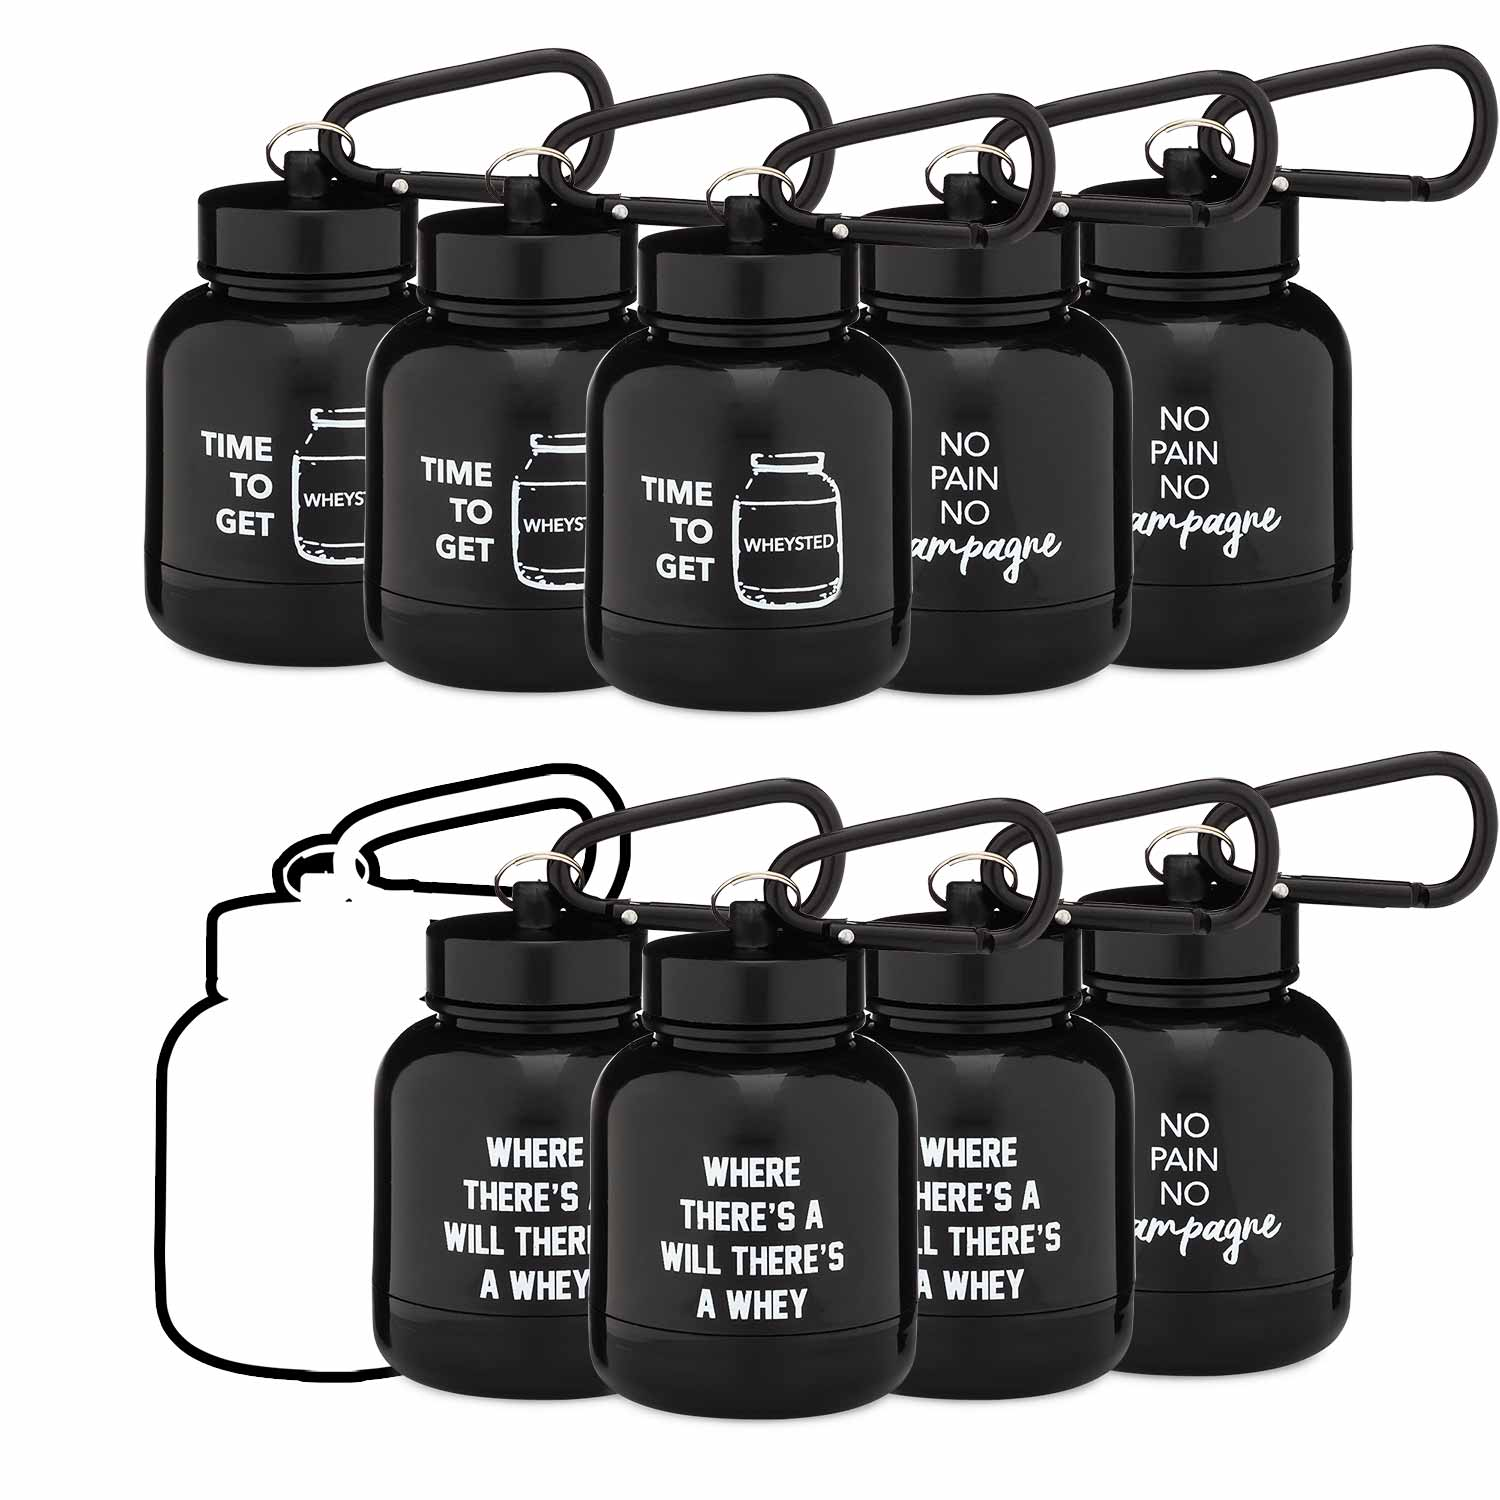 The OnMyWhey Protein Keychain Variety Pack